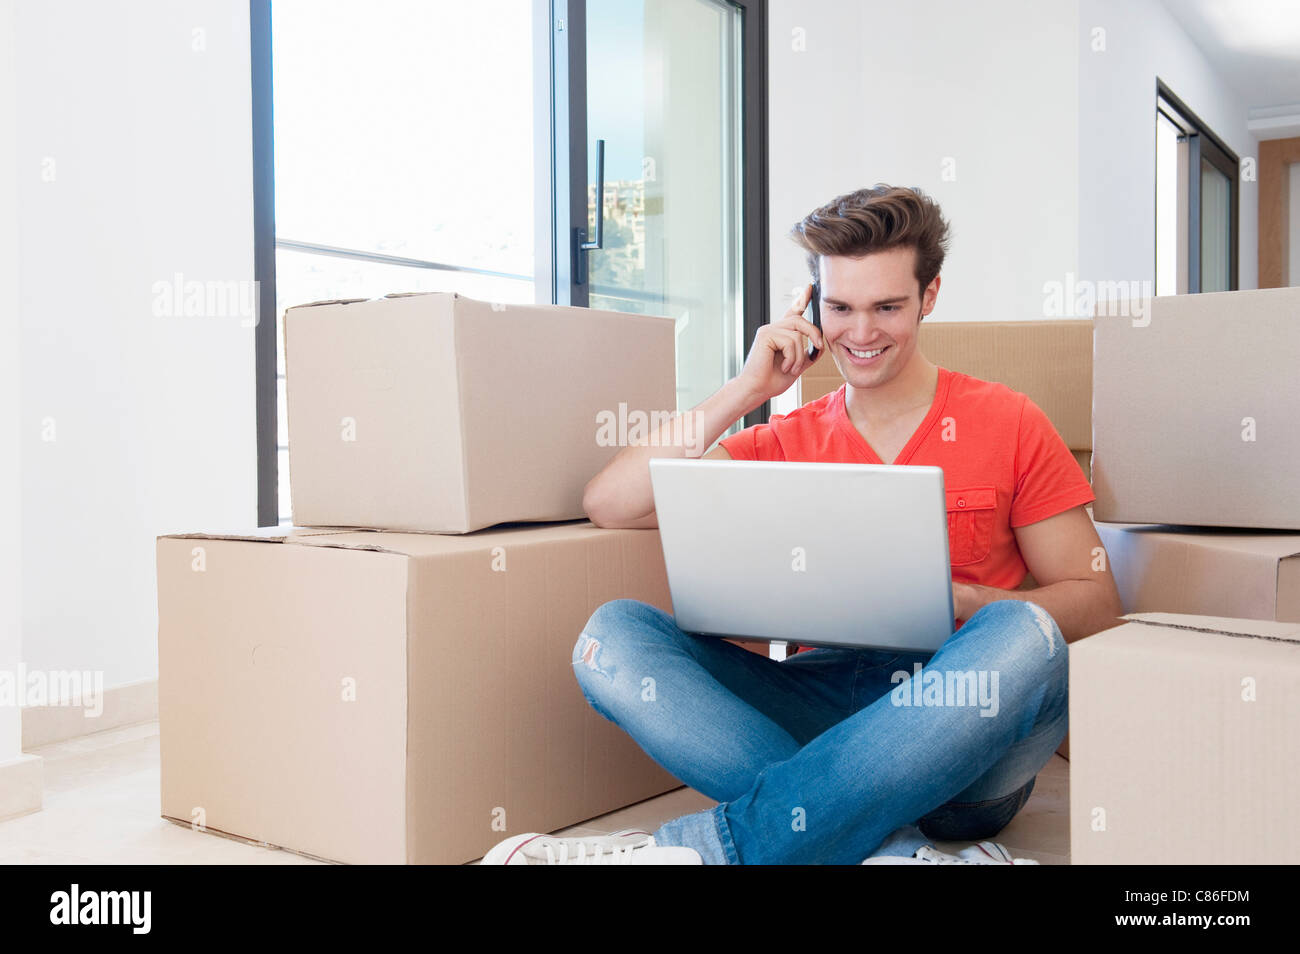 Man using laptop in new home - Stock Image